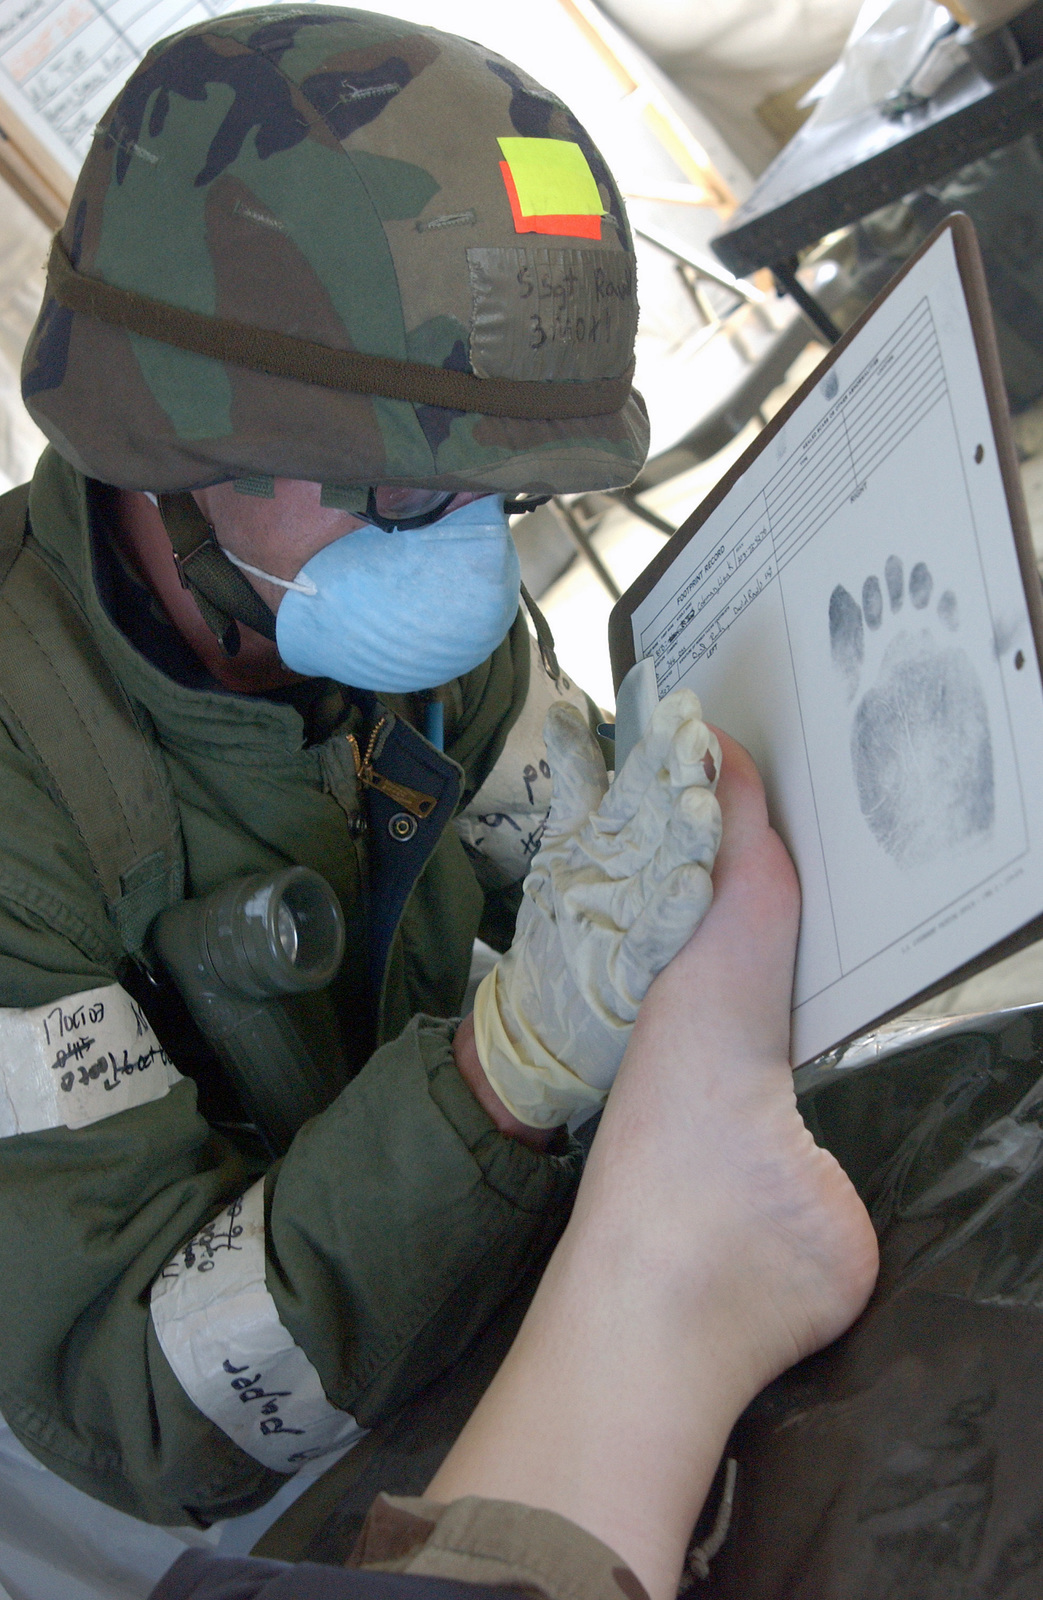 Wearing a protective dust mask, US Air Force (USAF) STAFF Sergeant (SSGT) David Rawls from the 366th Services Squadron (SS) gets footprints from a fallen comrade during Exercise Coronet White, the wing's Operational Readiness Inspection (ORI) exercise